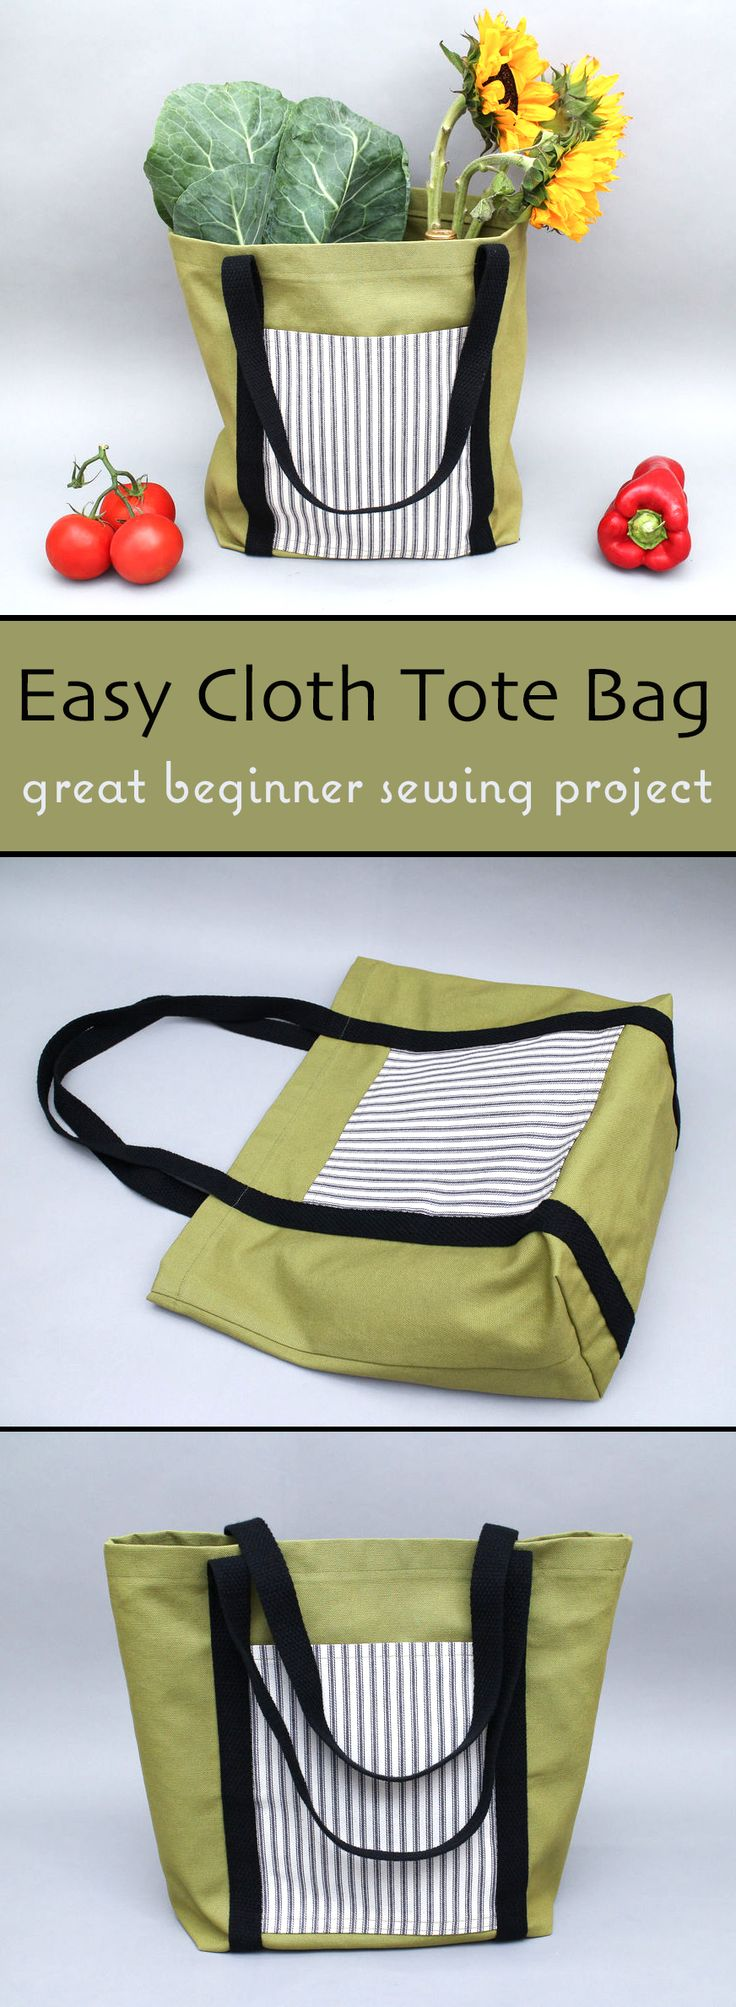 No matter what your level of sewing expertise, this useful bag is a great projec…